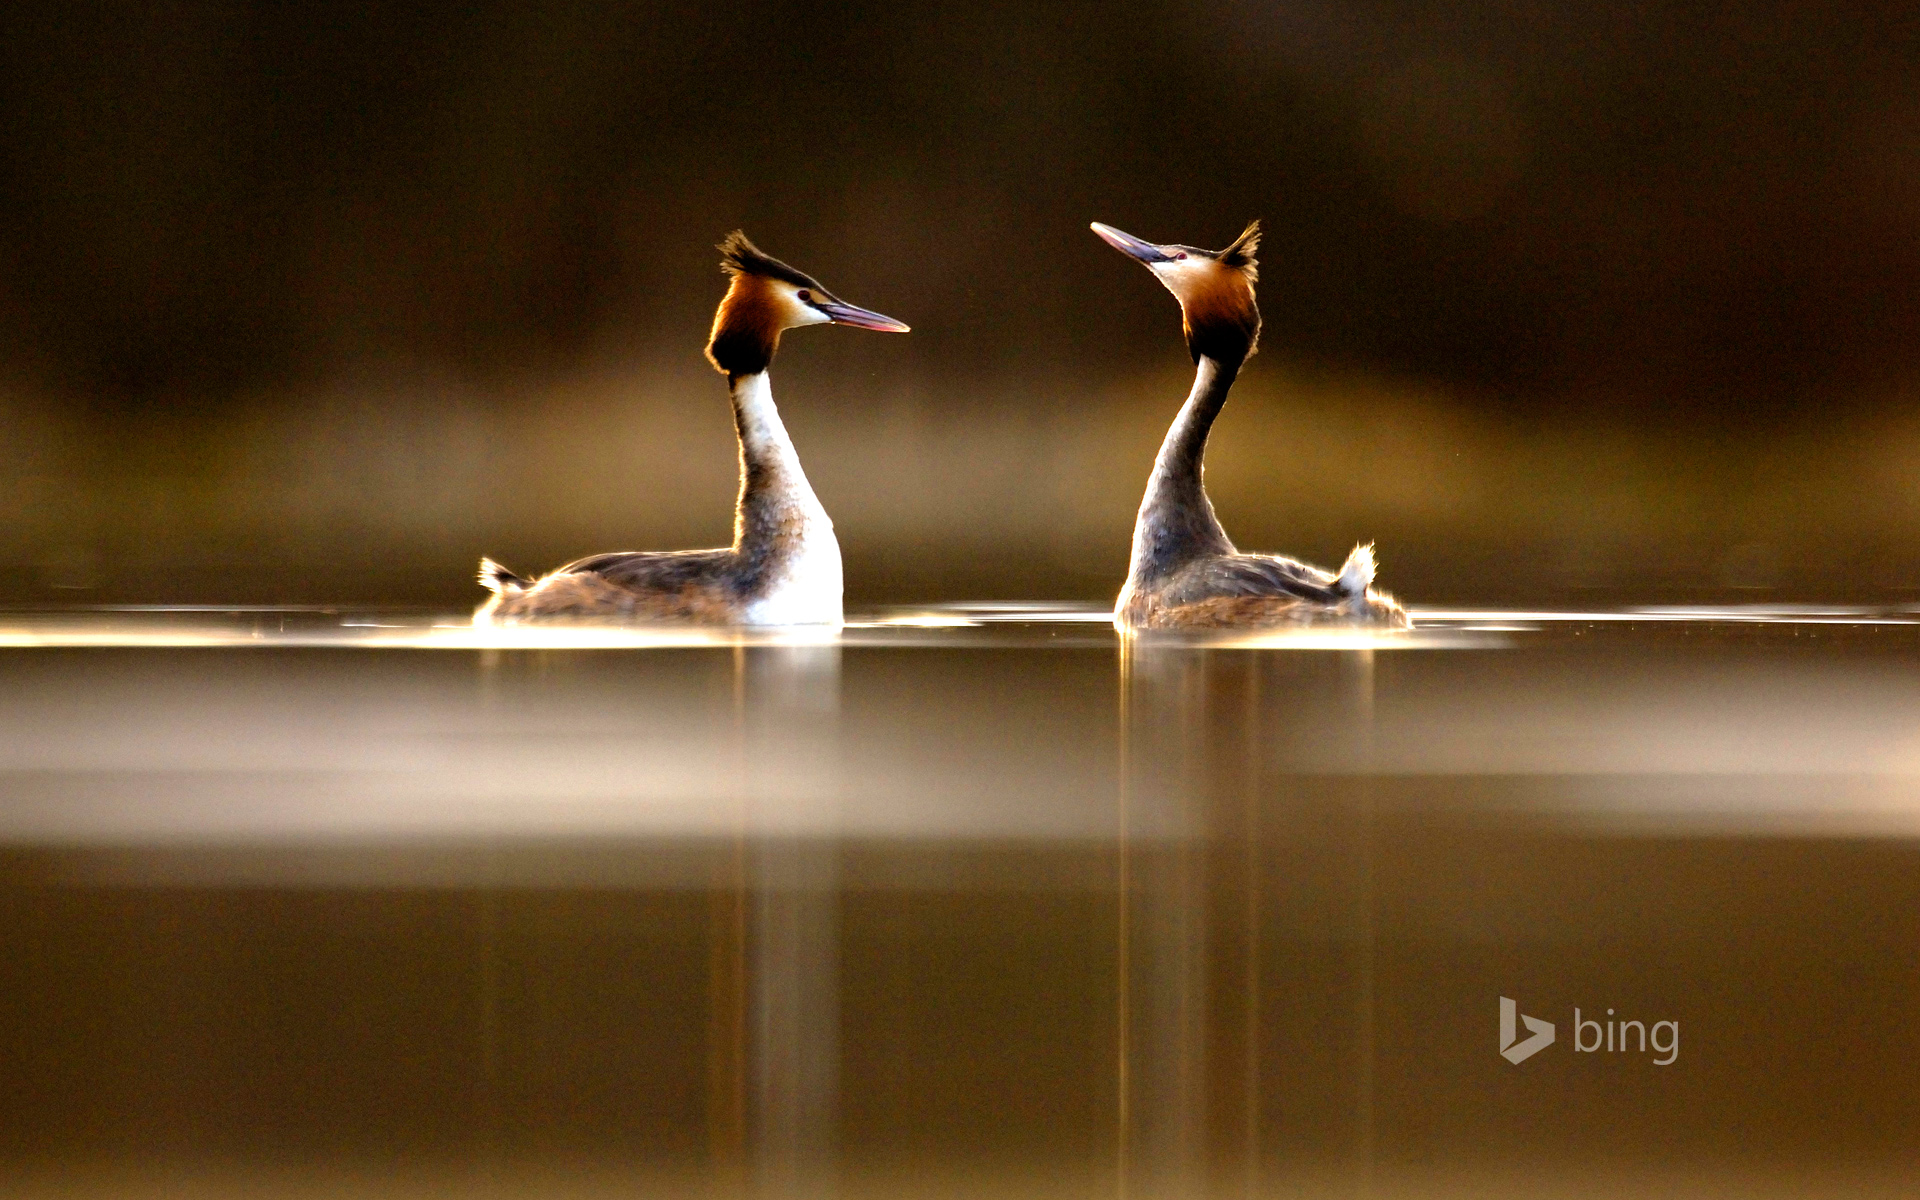 Pair of Great Crested Grebes (Podiceps cristatus) during their elaborate courtship dance